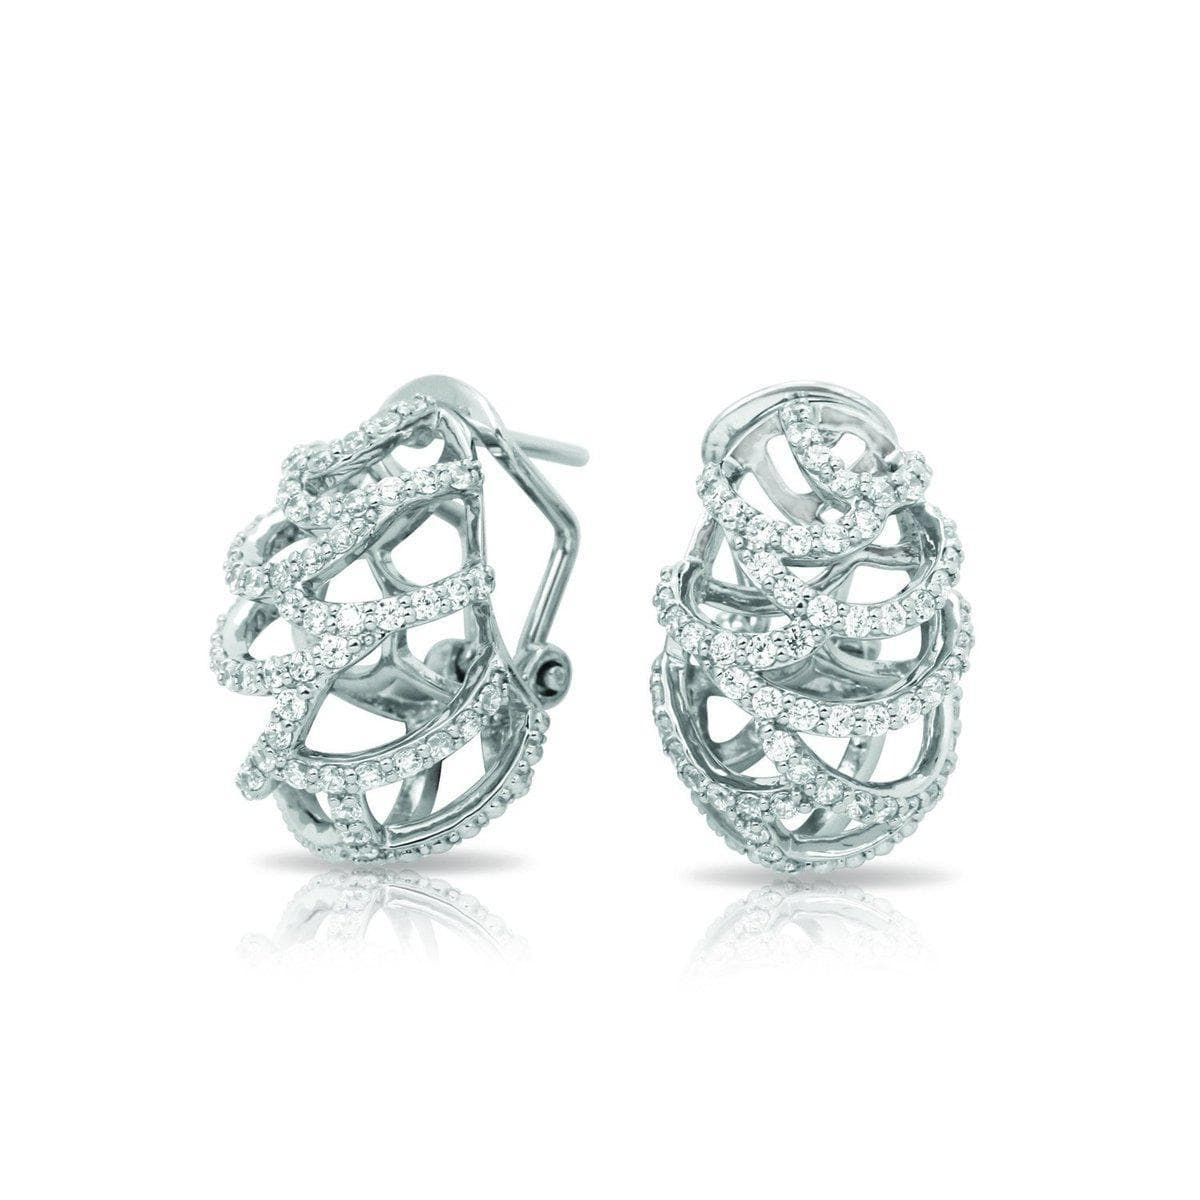 Monaco White Earrings-Belle Etoile-Renee Taylor Gallery